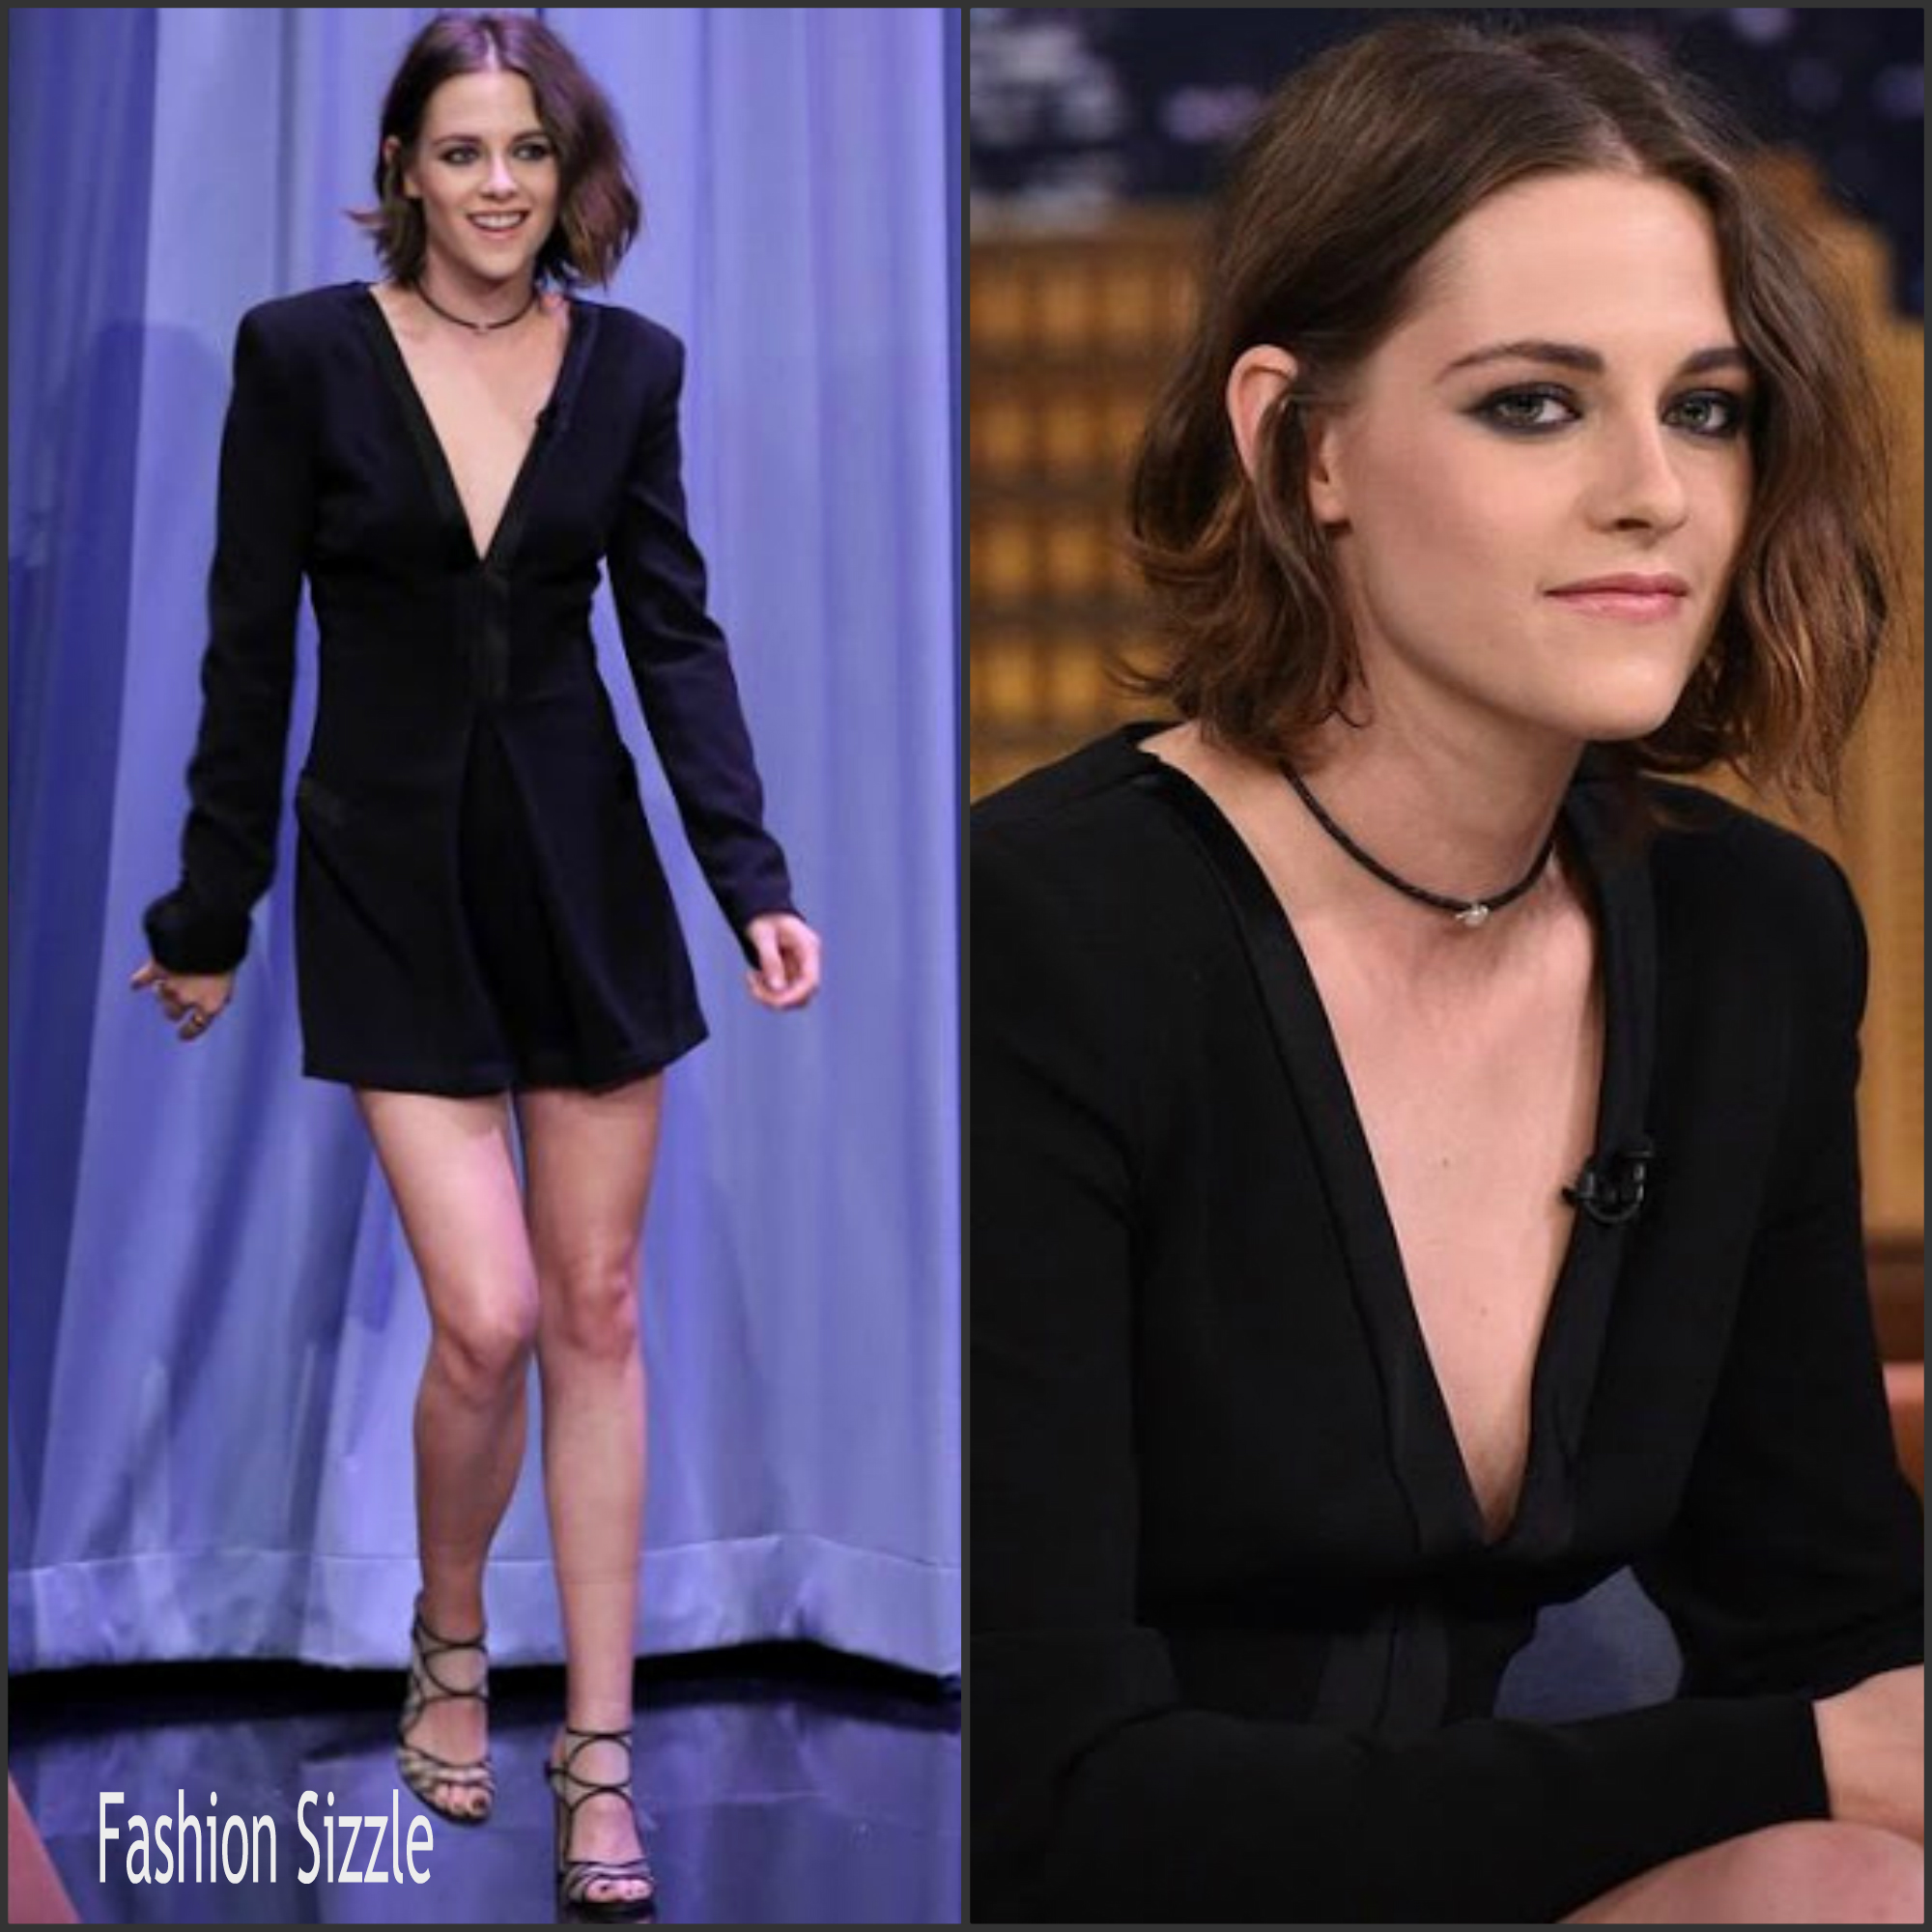 kristen-stewart-in-diane-von-furstenberg-on-the-tonigt-show-starring-jimmy-fallon